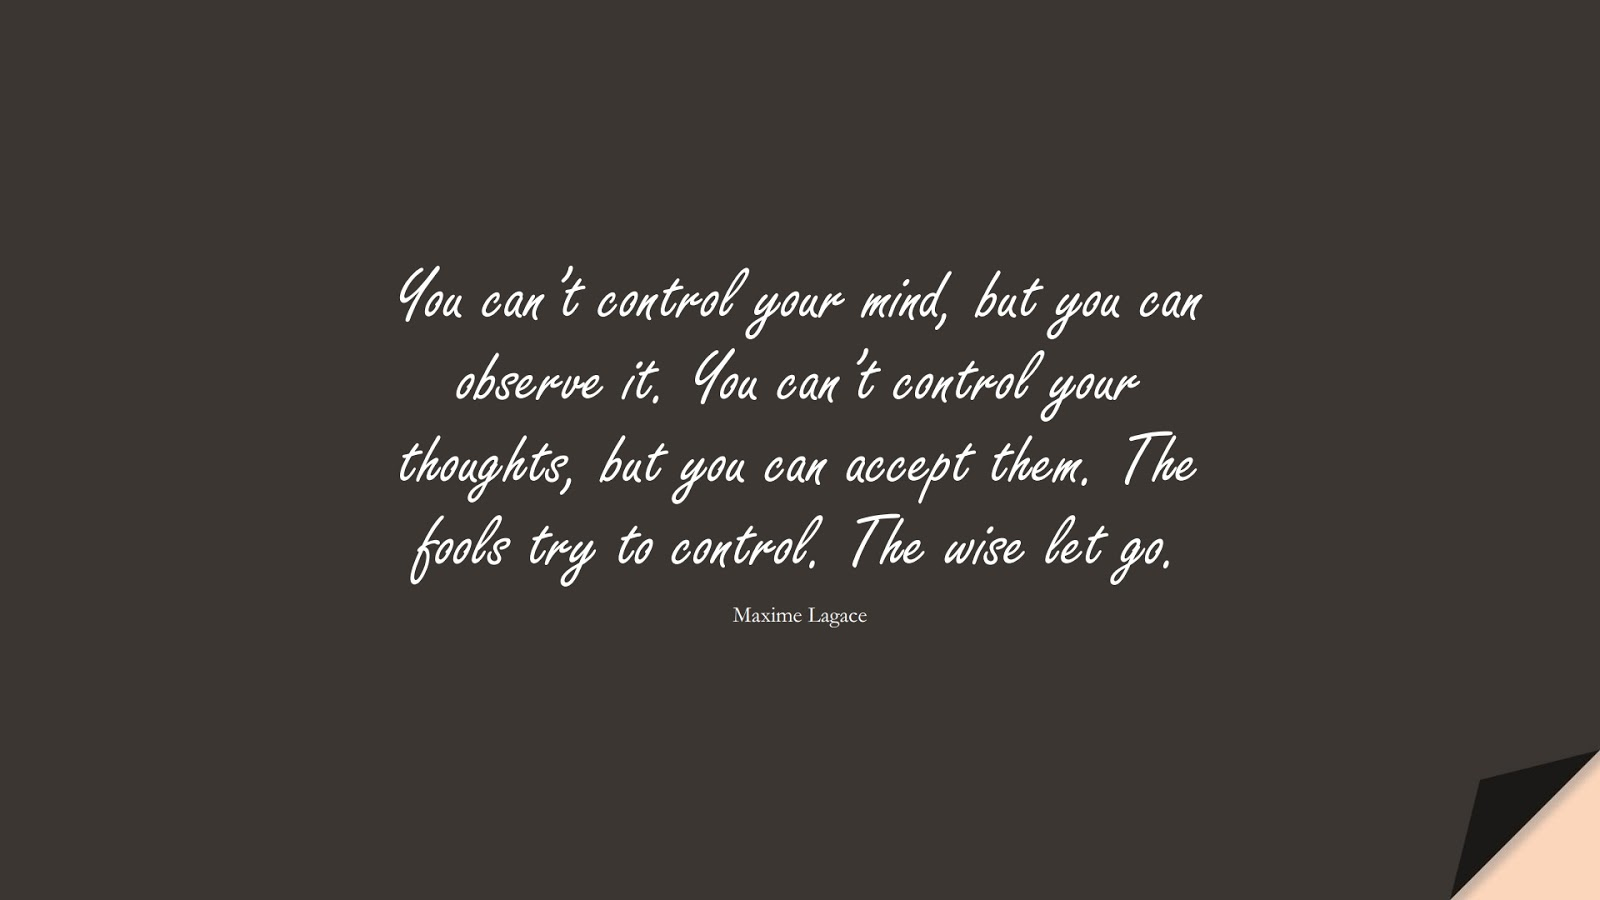 You can't control your mind, but you can observe it. You can't control your thoughts, but you can accept them. The fools try to control. The wise let go. (Maxime Lagace);  #CalmQuotes